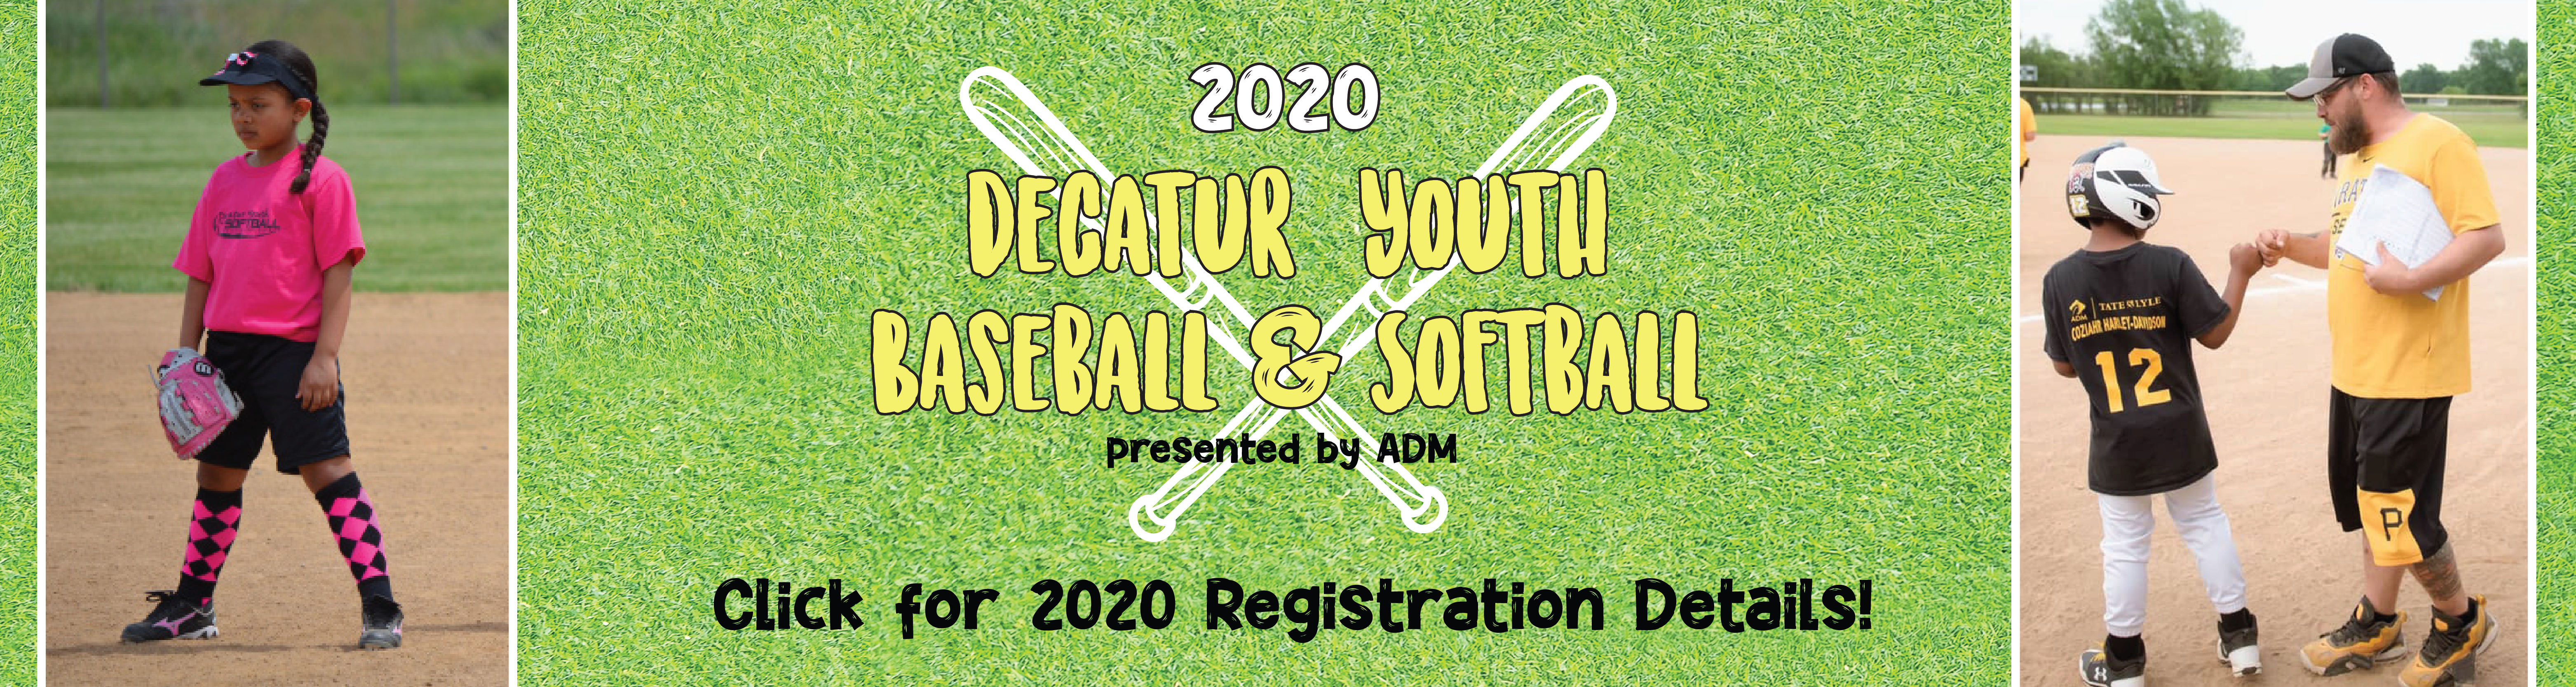 Baseball-Softball-Registration_Slider_2020-01